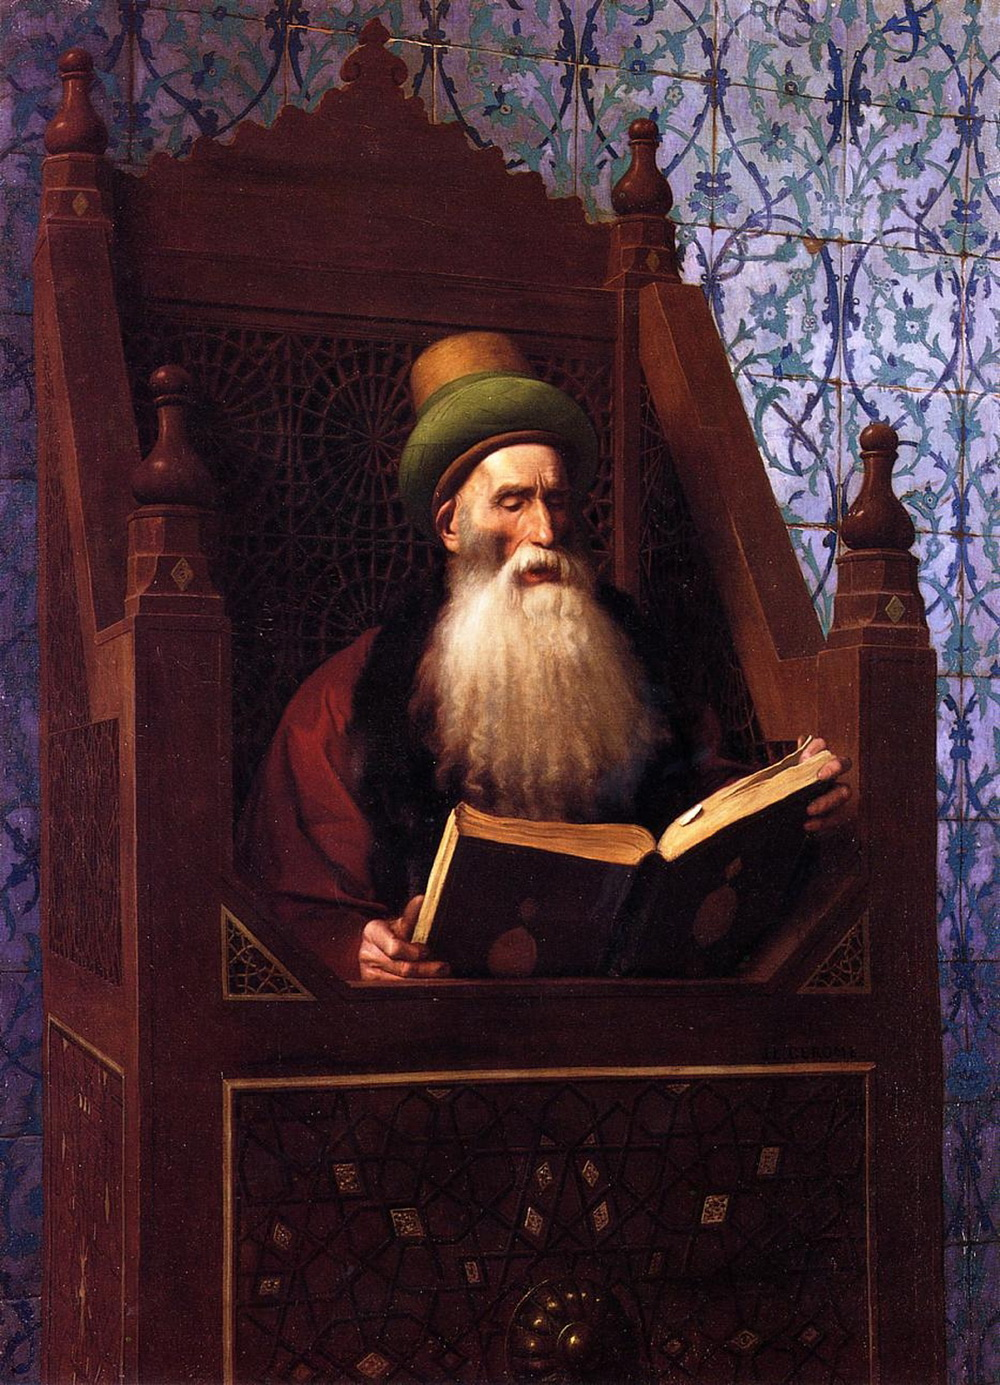 Gérôme - Mufti Reading in His Prayer Stool-2